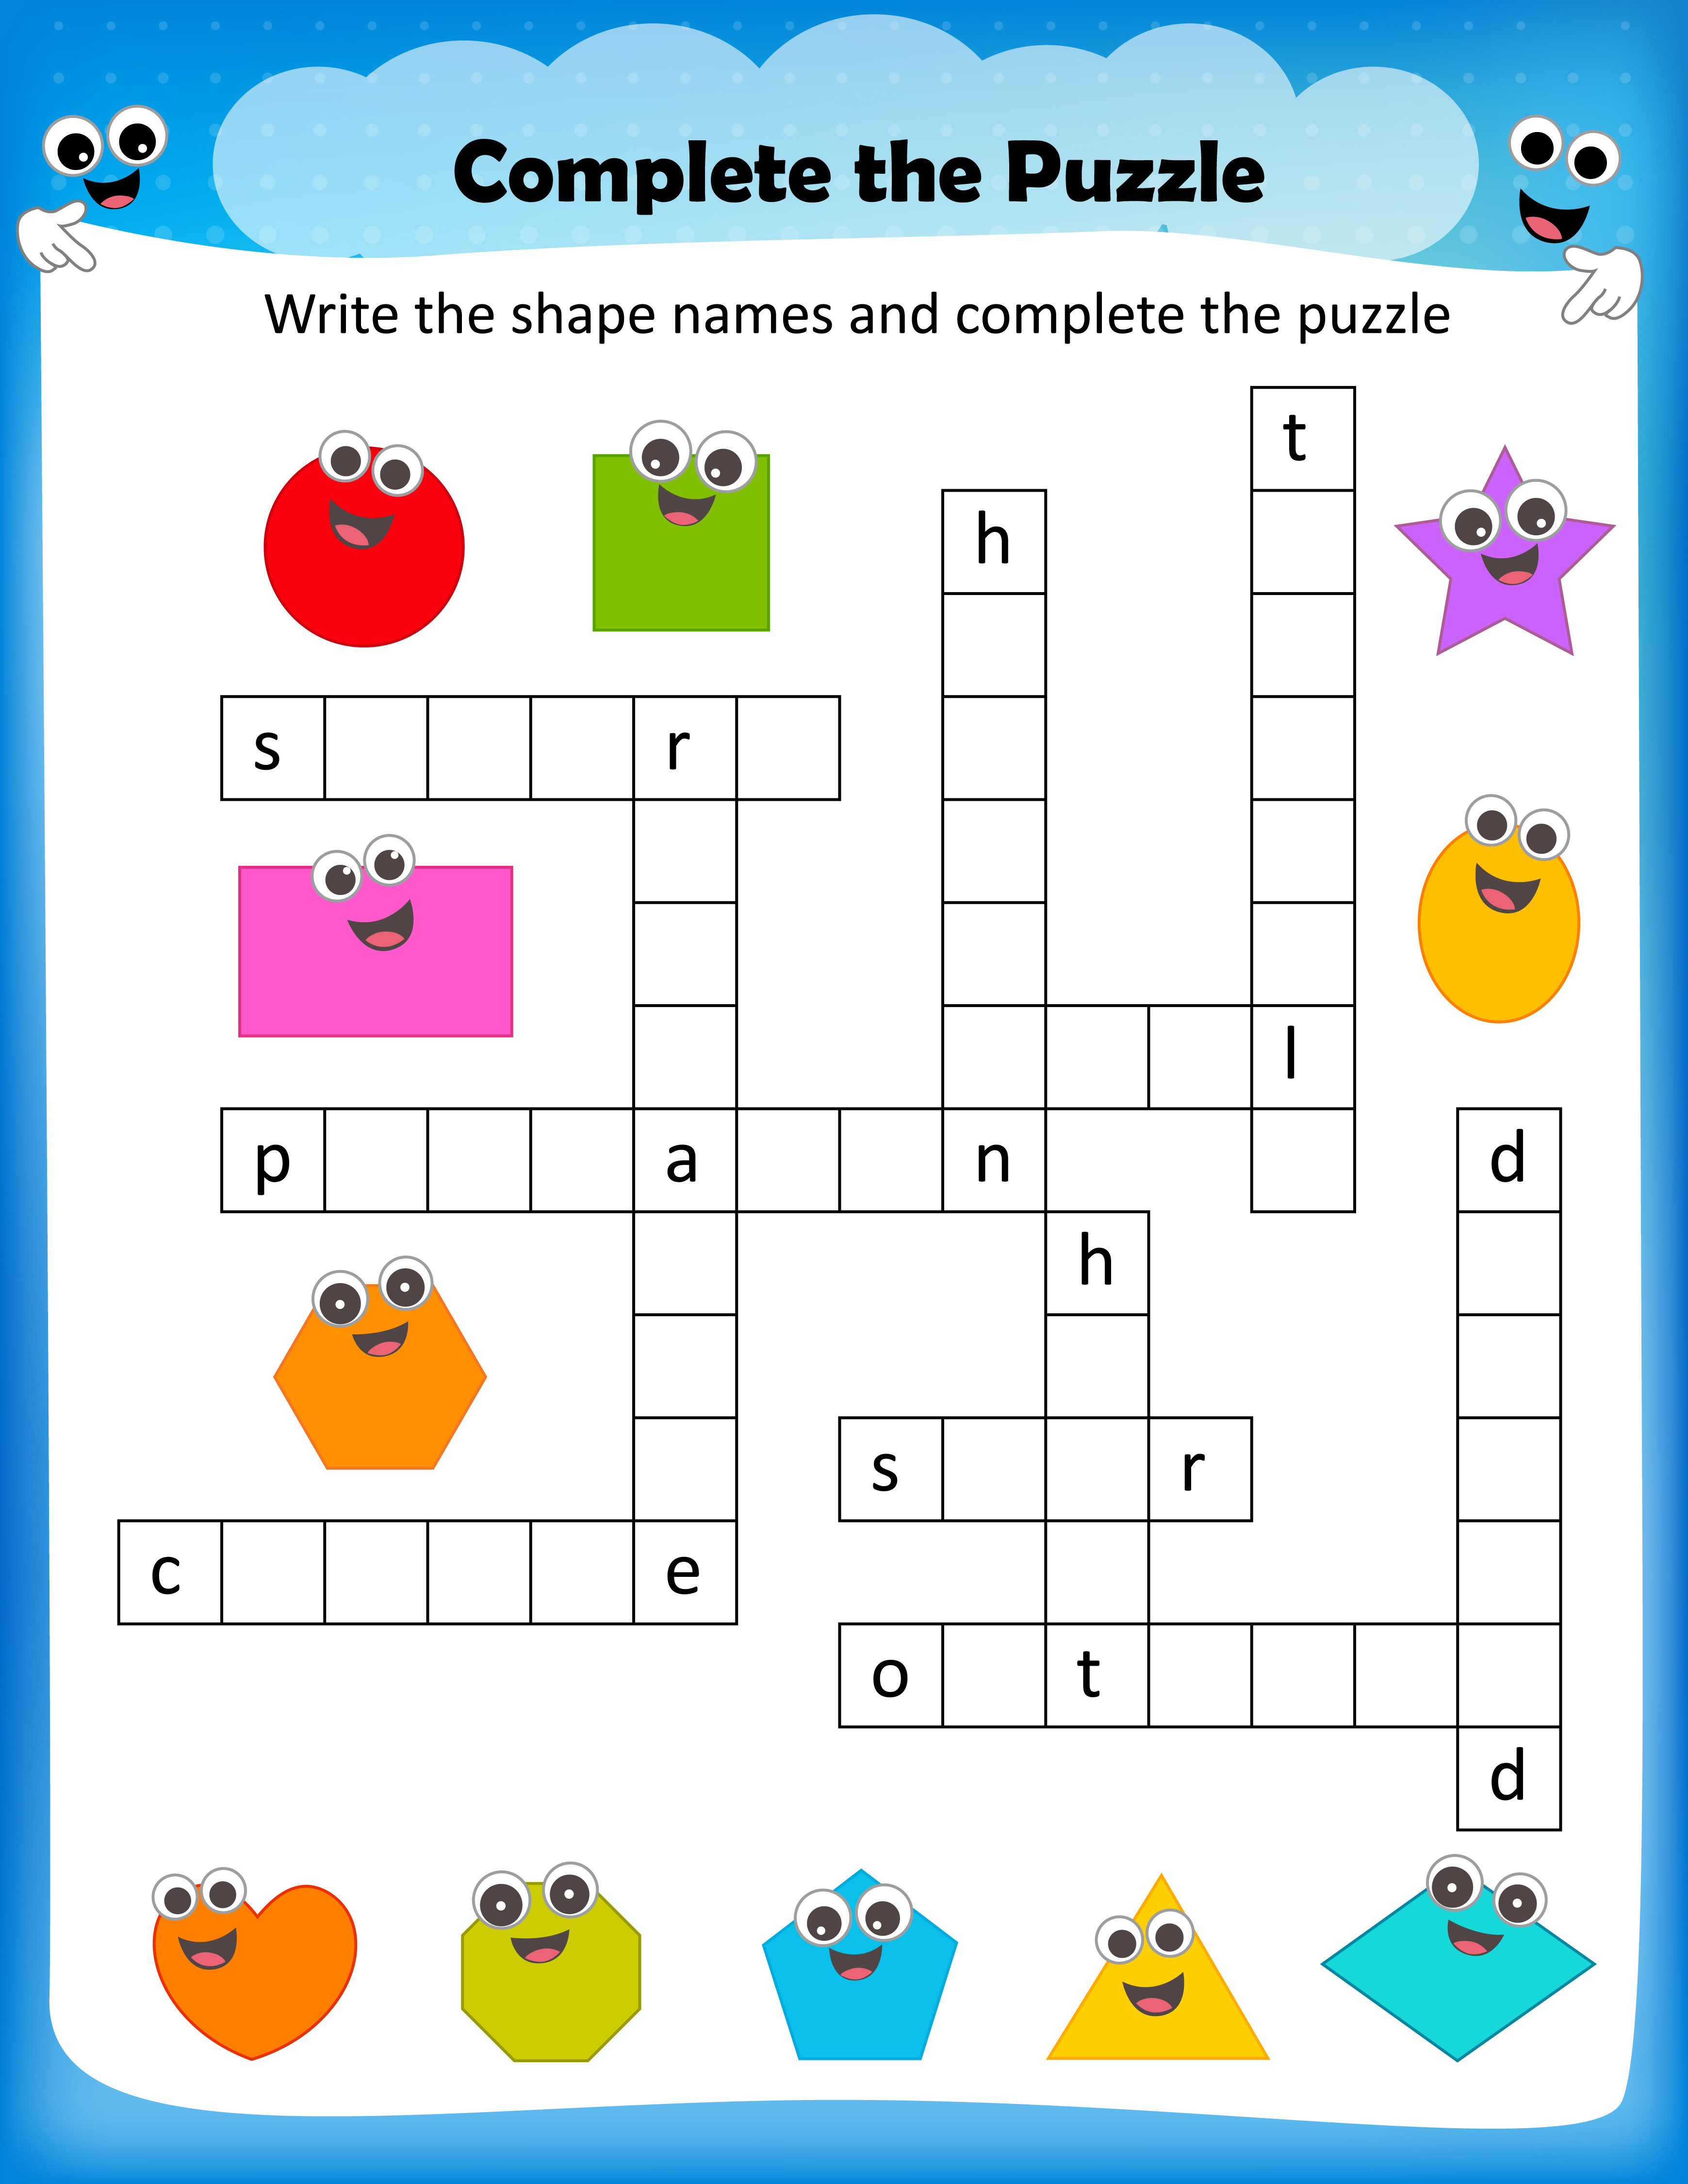 Free Printable Crosswords With Top 10 Benefits For Our Kids - Free Printable Crossword Puzzles For Elementary Students